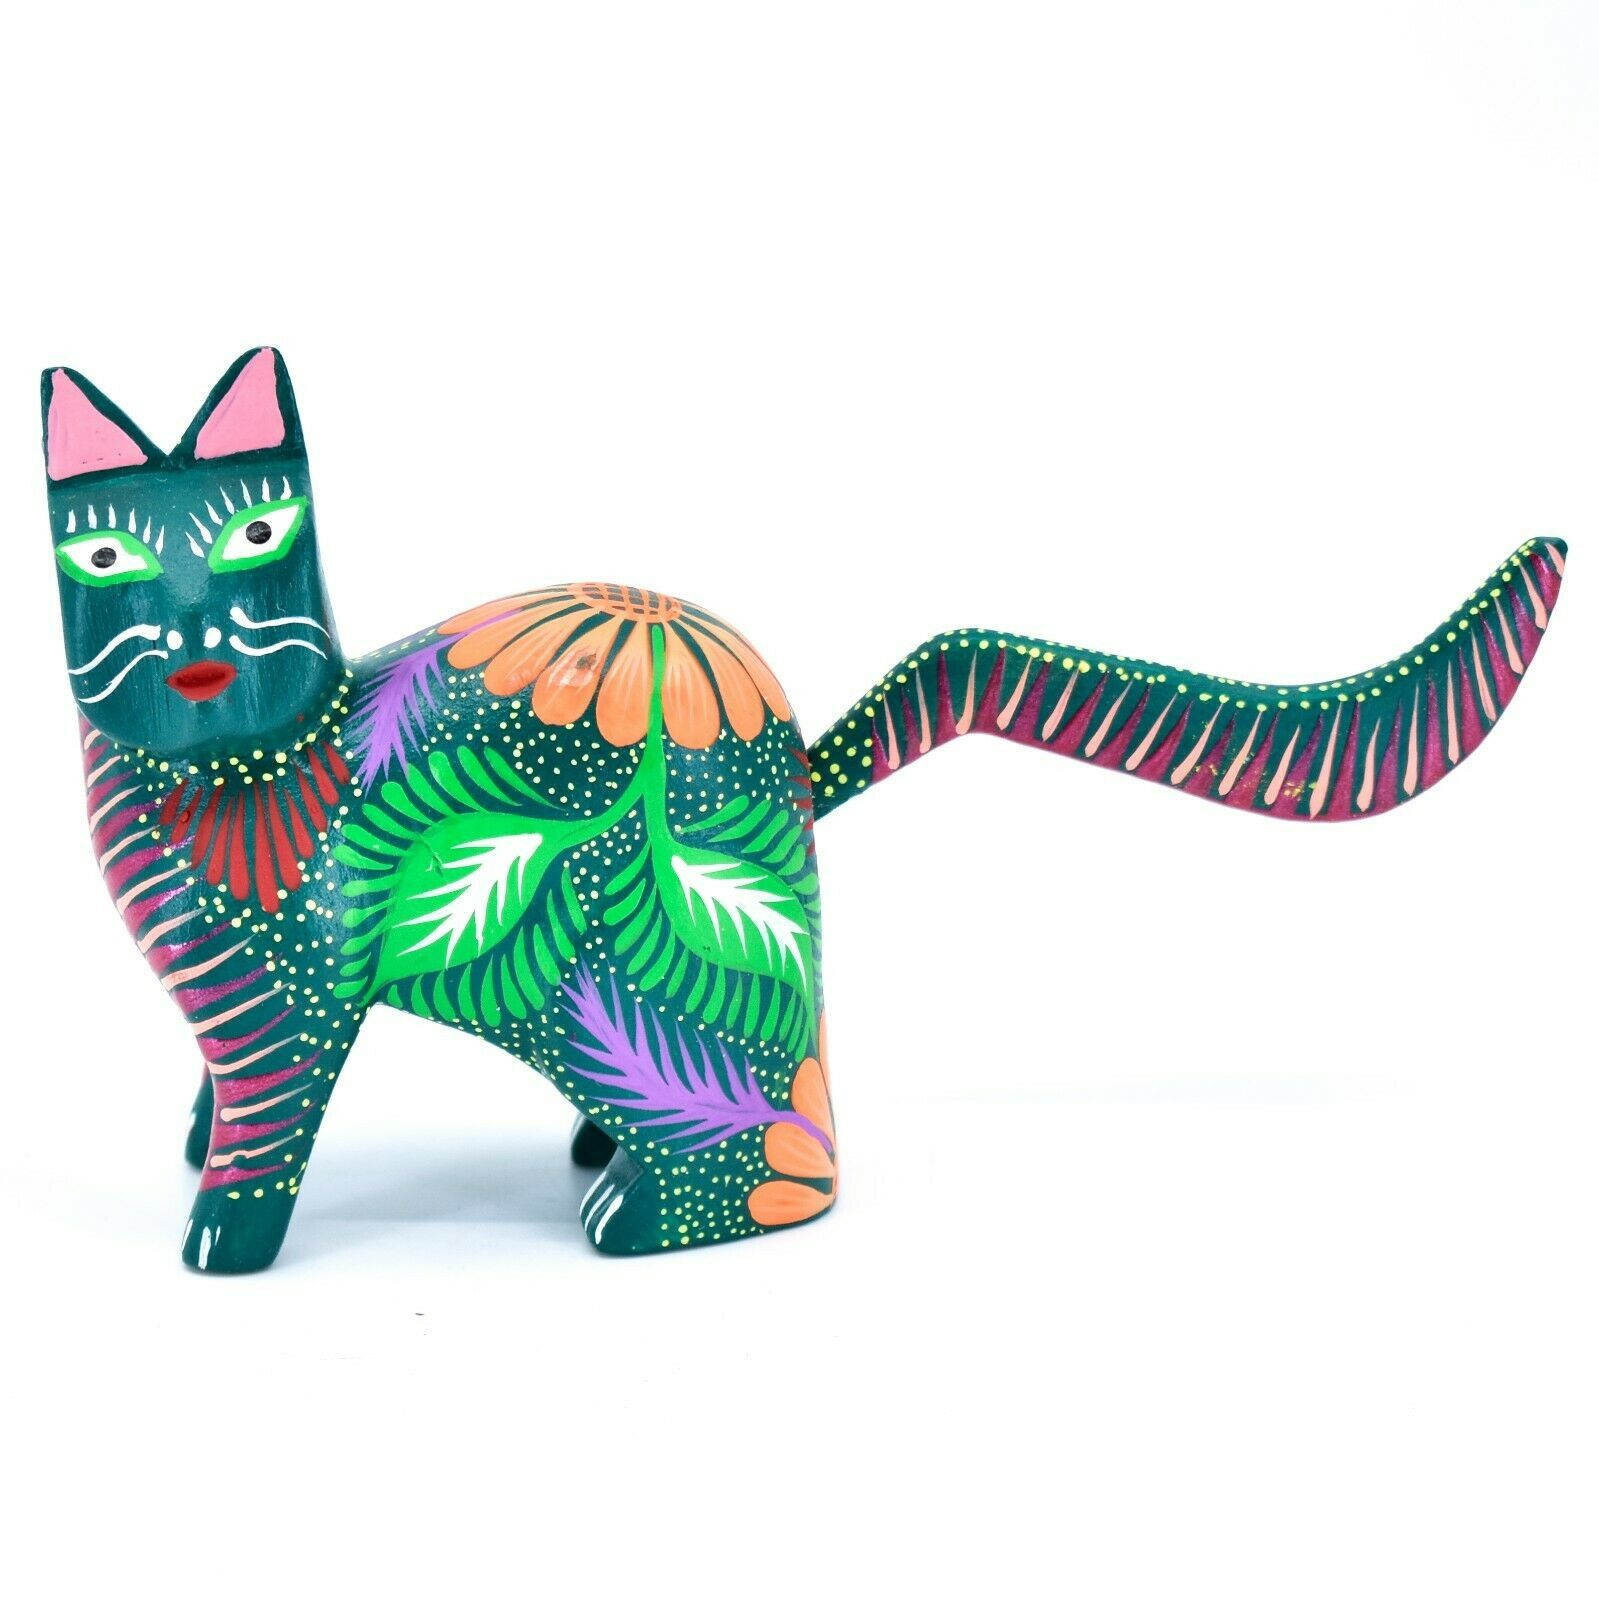 Handmade Alebrijes Oaxacan Copal Wood Carving Painted Cat Kitten Figurine